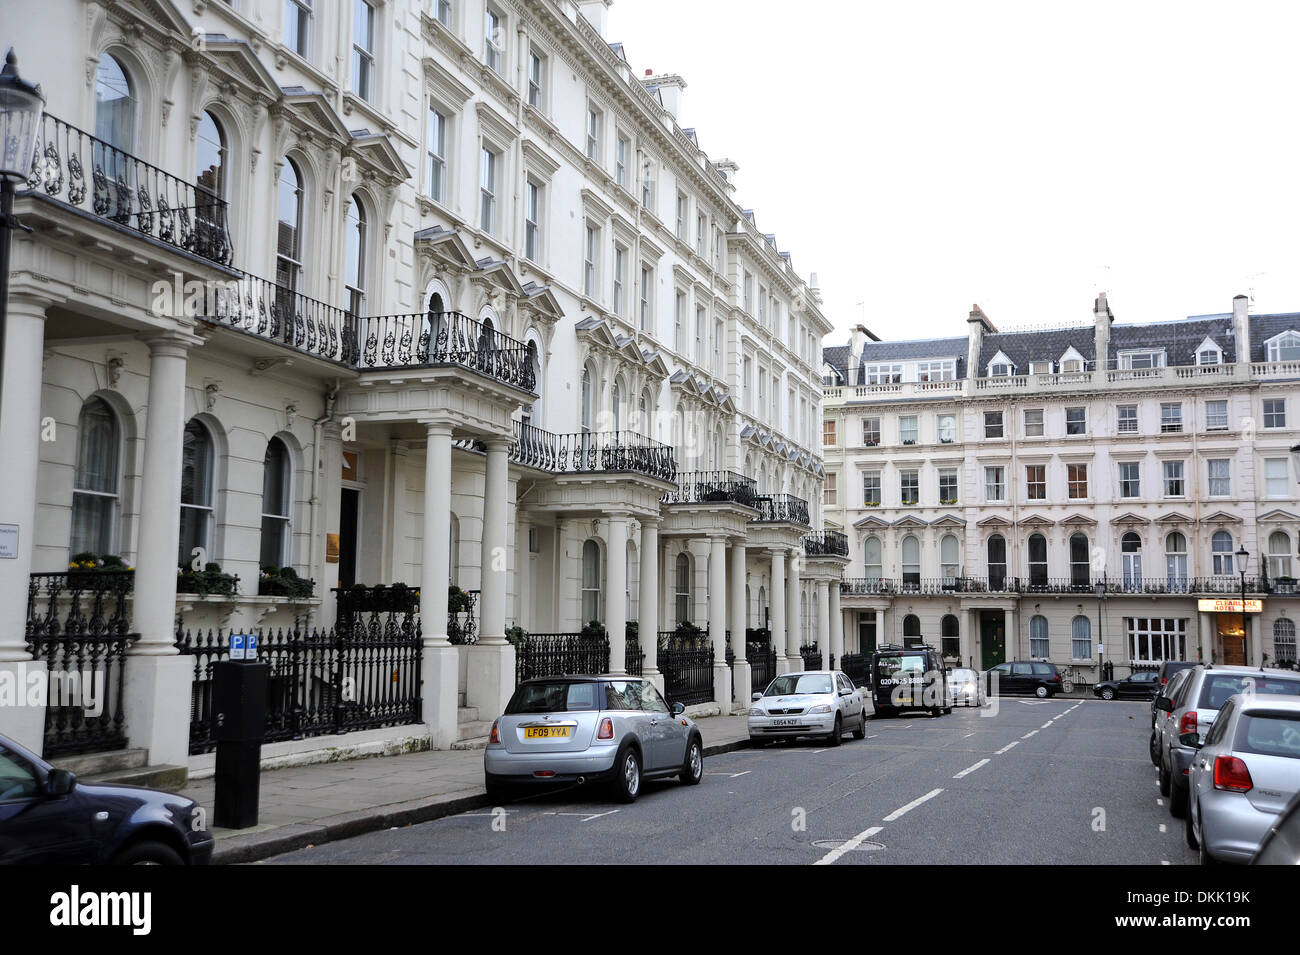 Typical large houses in the Royal Borough of Kensington and Chelsea London W8 UK Photograph taken by Simon Dack - Stock Image